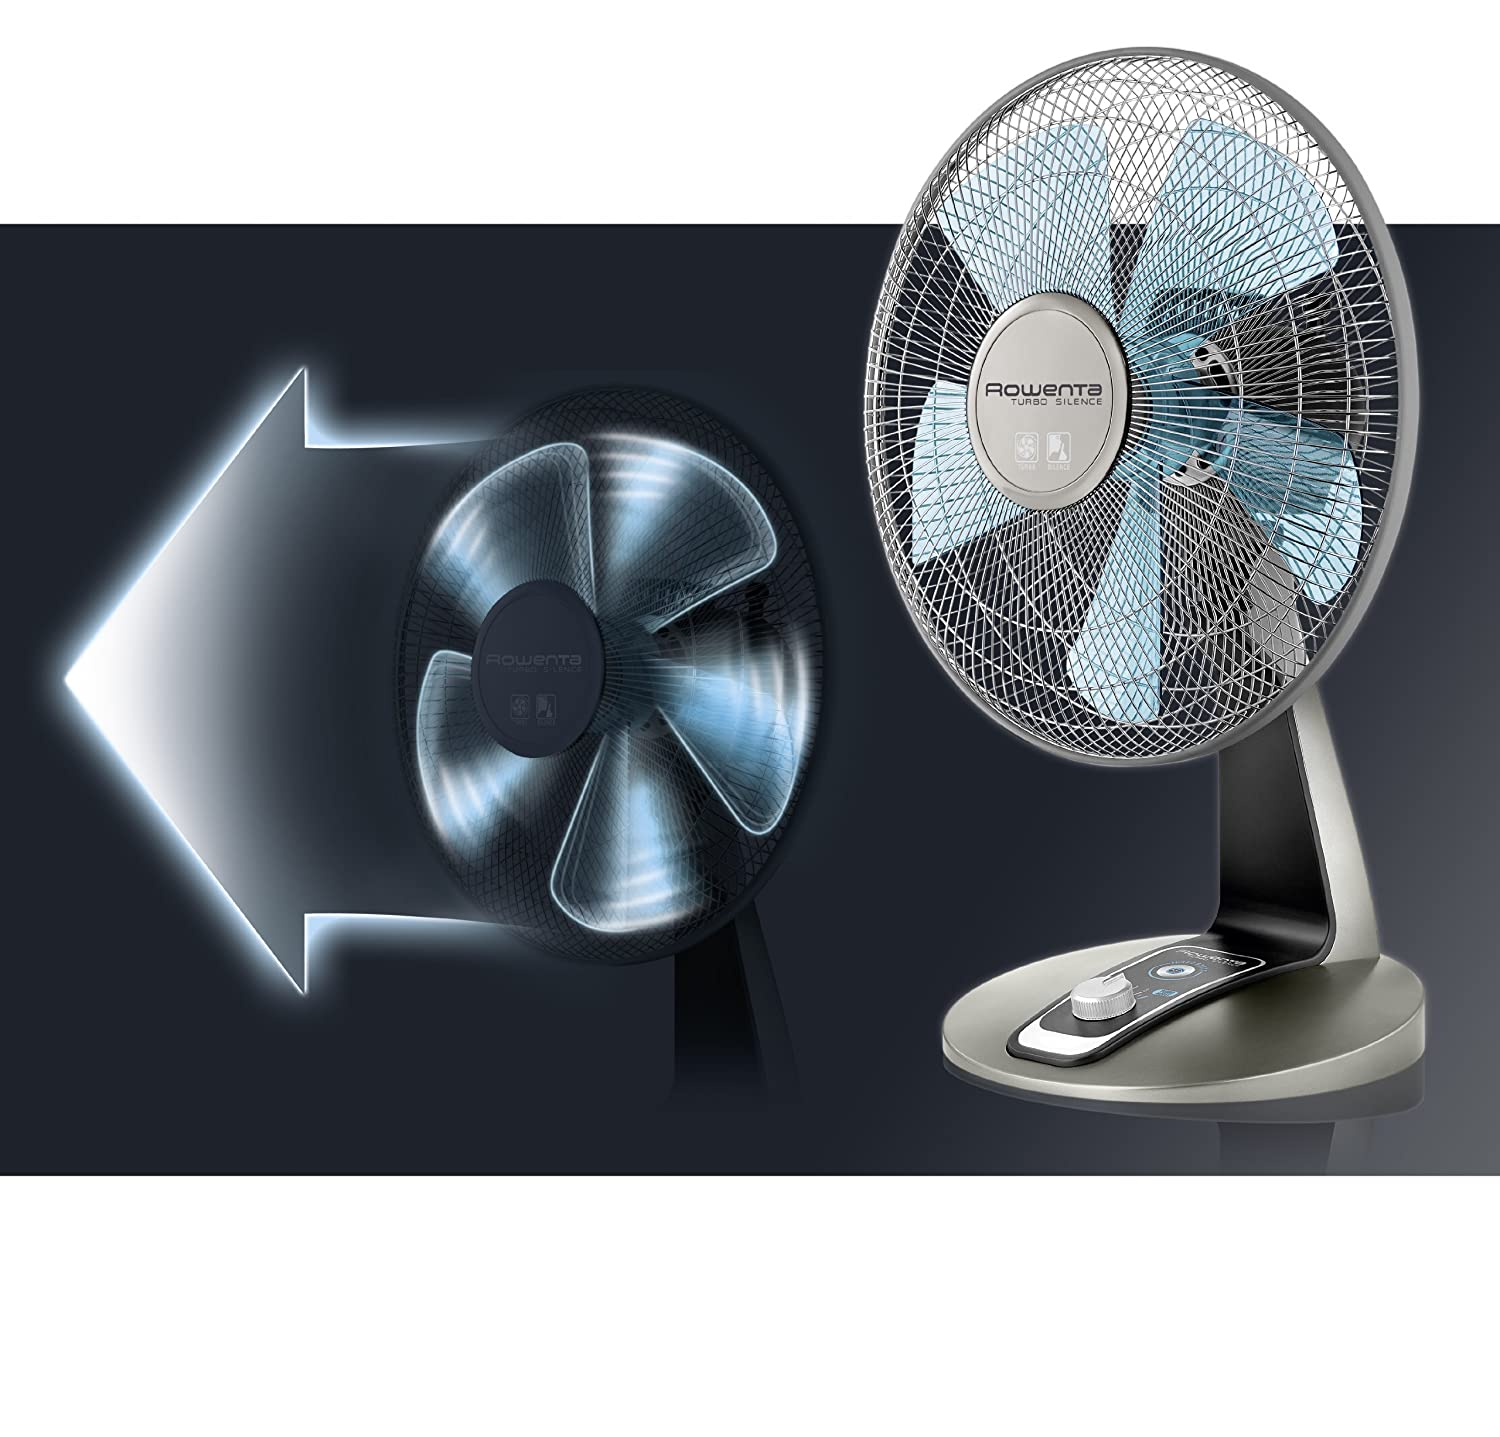 Amazon.com: Rowenta VU2531 Turbo Silence Oscillating 12-Inch Table Fan Powerful and Quiet, 4-Speed, Bronze (Certified Refurbished): Home & Kitchen